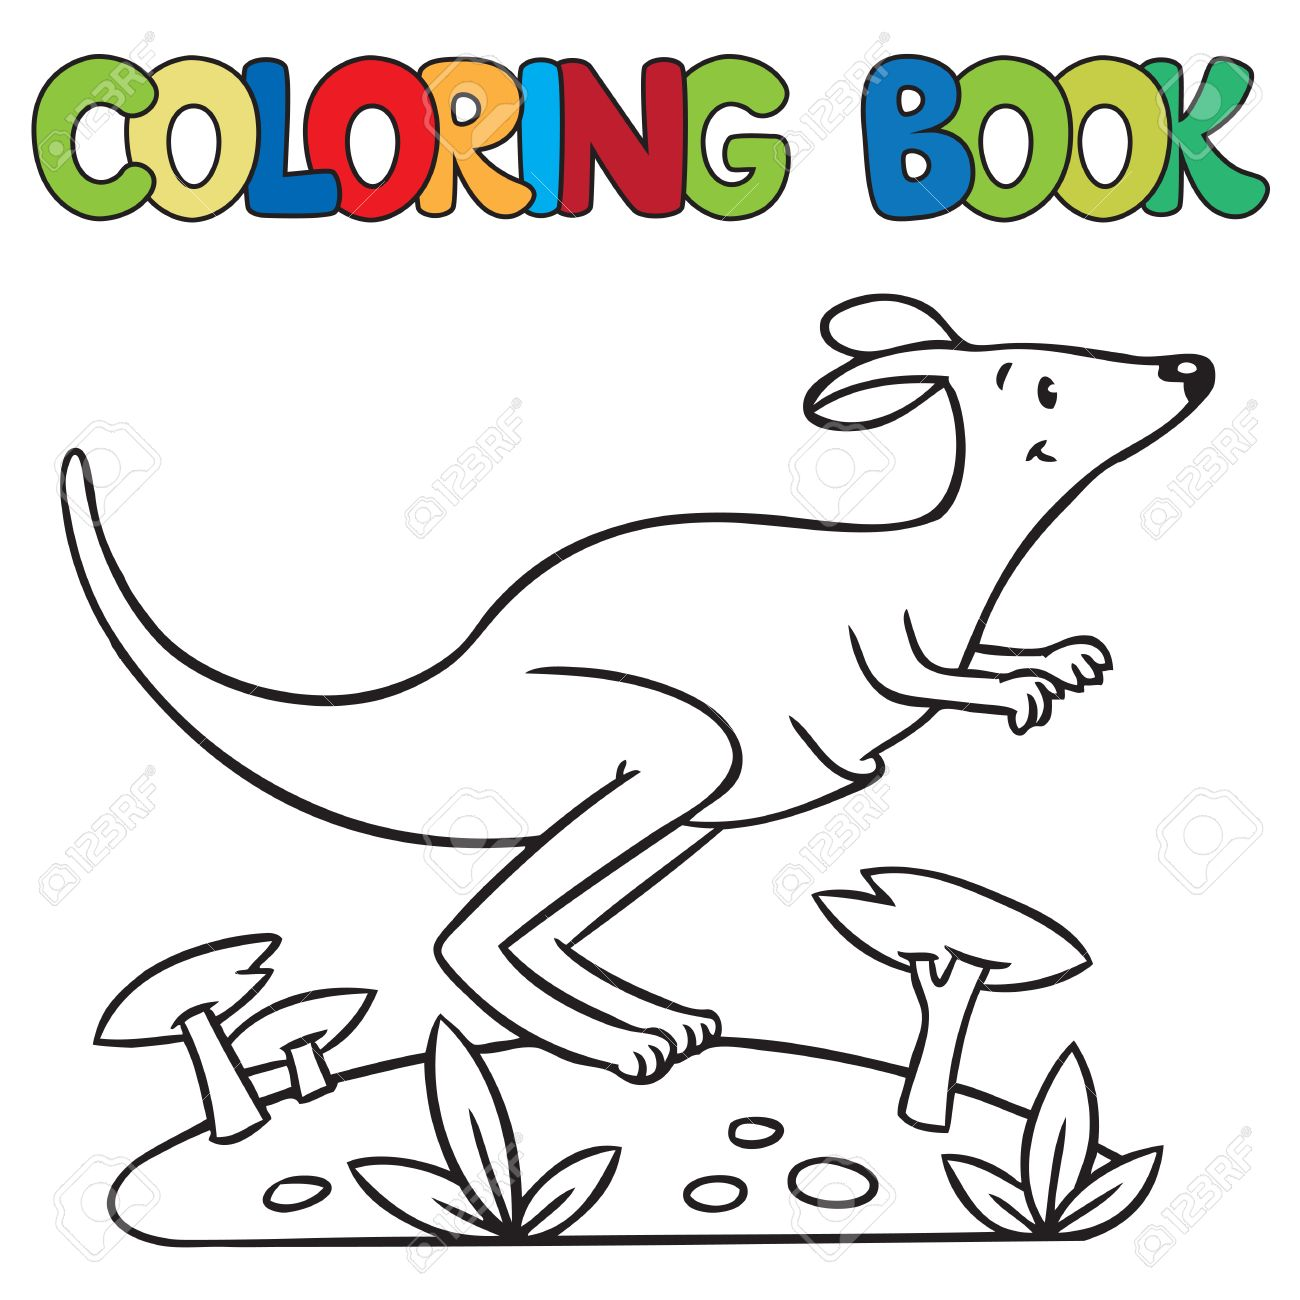 Coloring Book Or Picture Of Little Funny Jumping Kangaroo Running Through The Desert Stock